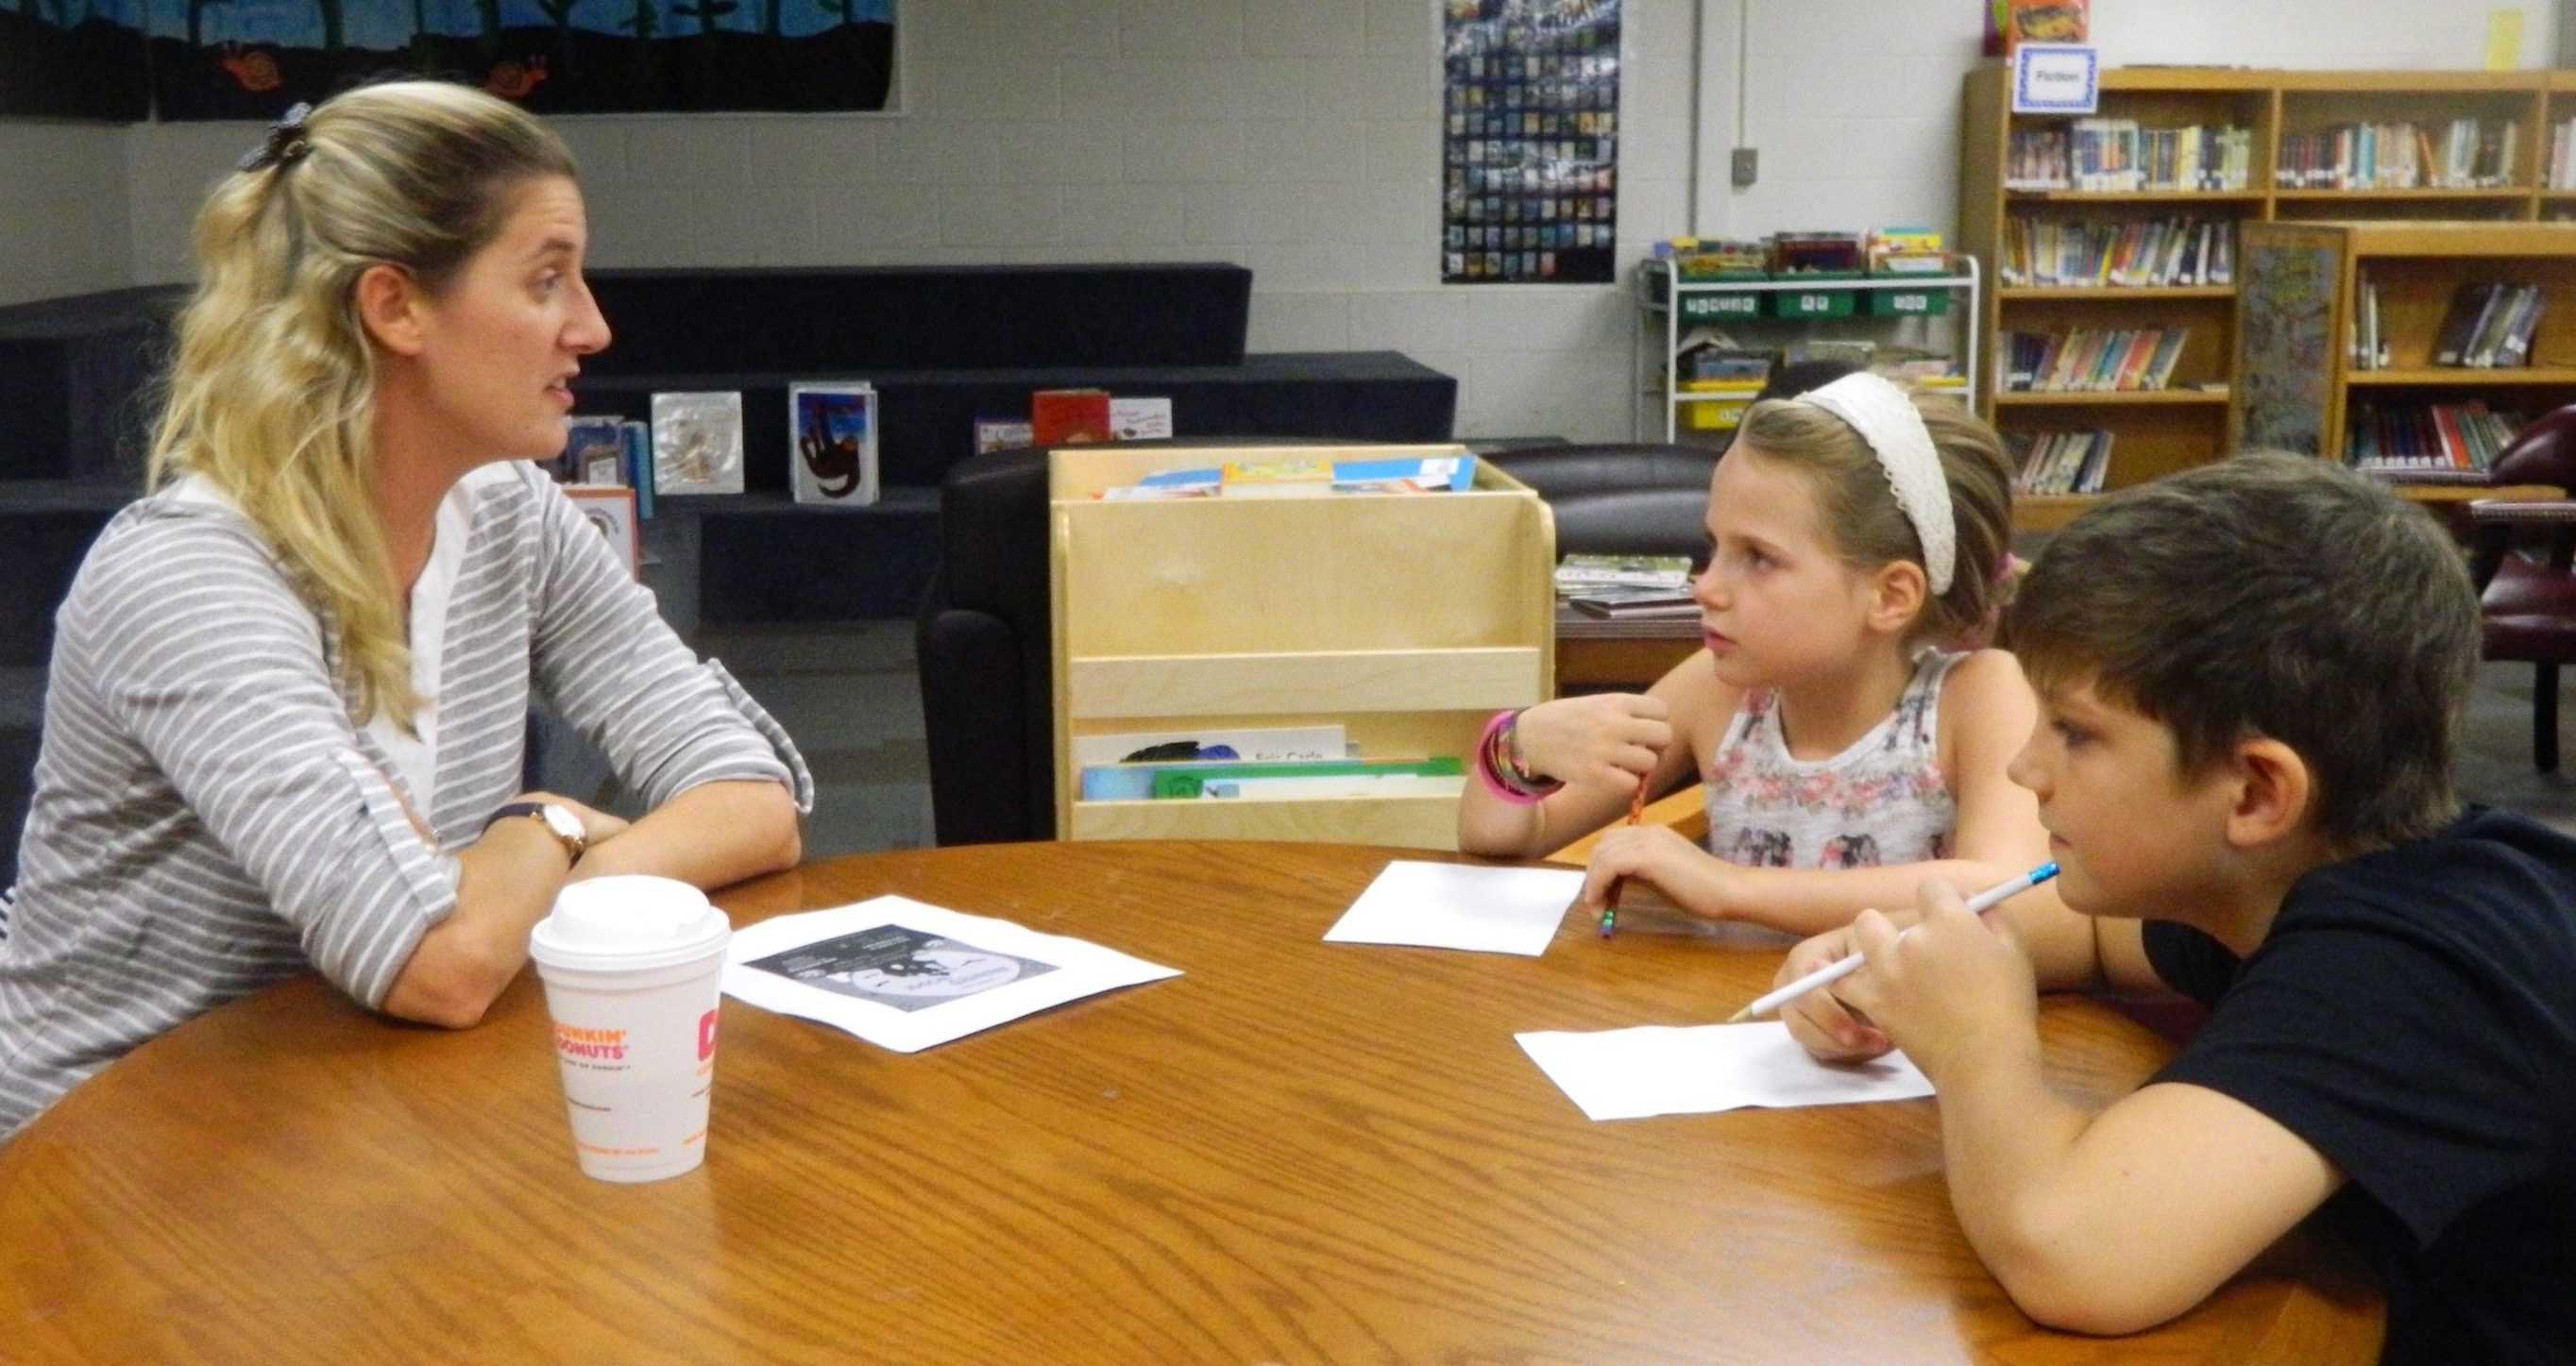 Lee Haley of the Cunniff School PTO (left) talks with Cunniff Kids News reporters about the annual Cunniff Halloween party Oct. 28, 2016.